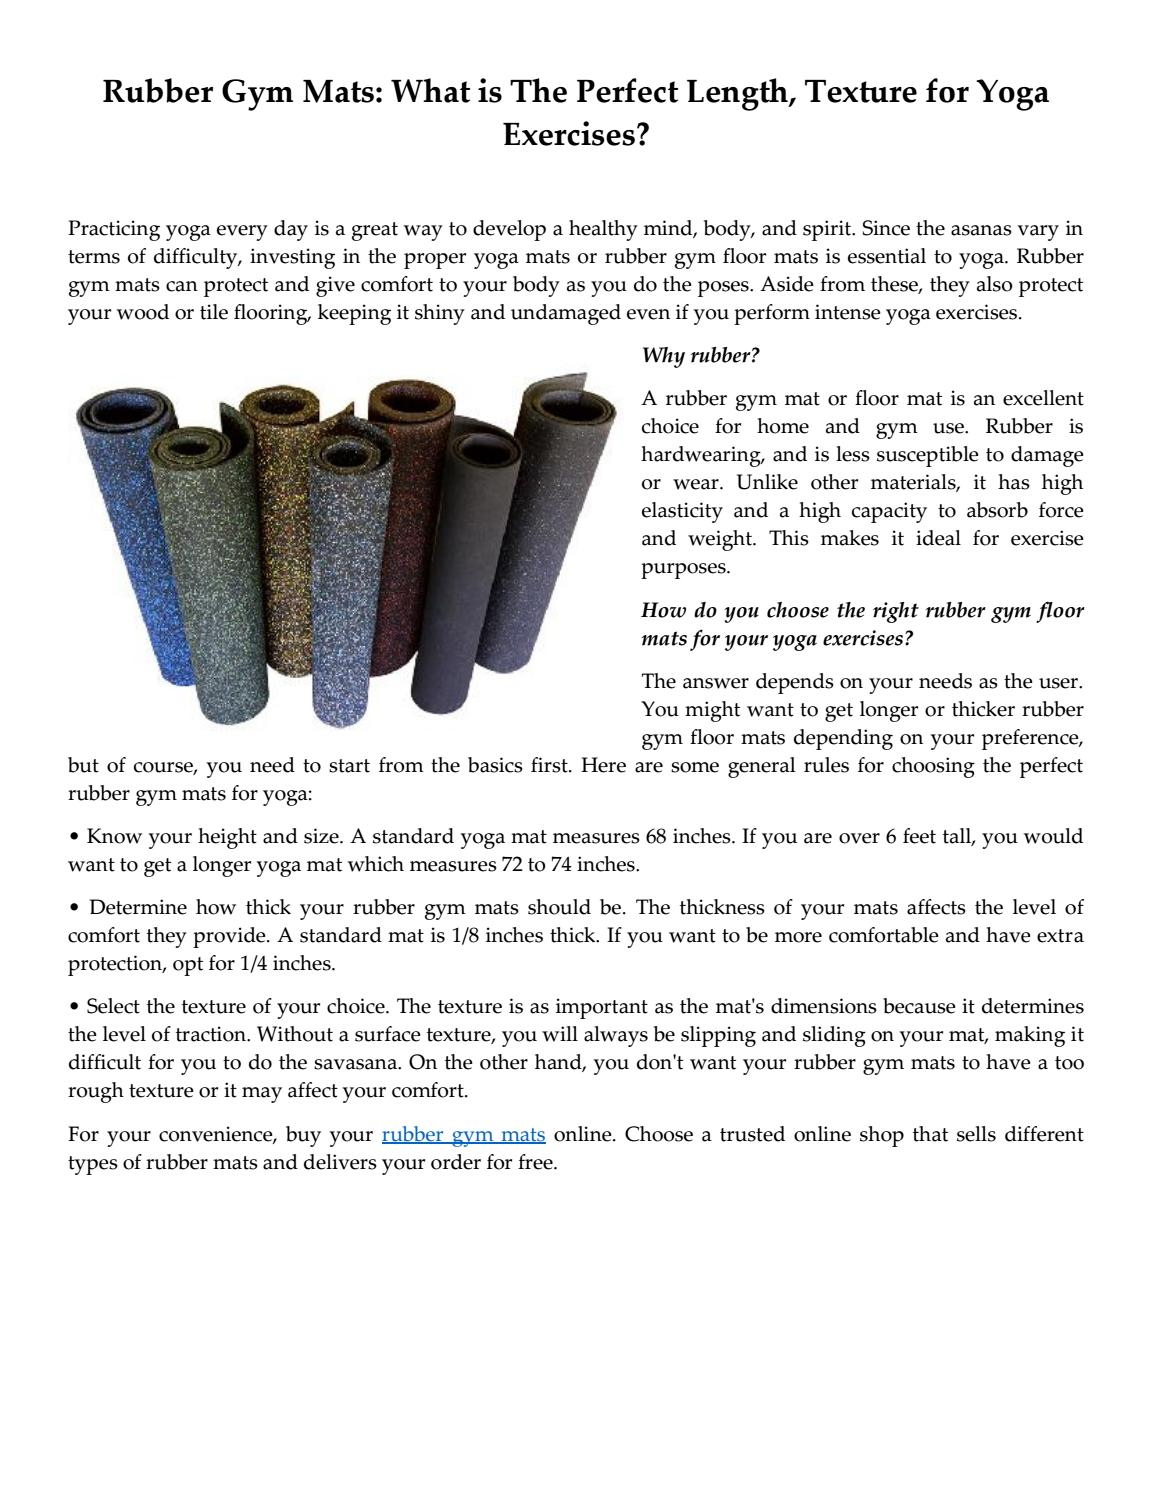 Rubber Gym Mats What Is The Perfect Length Texture For Yoga Exercises By Rubber Cal Inc Issuu